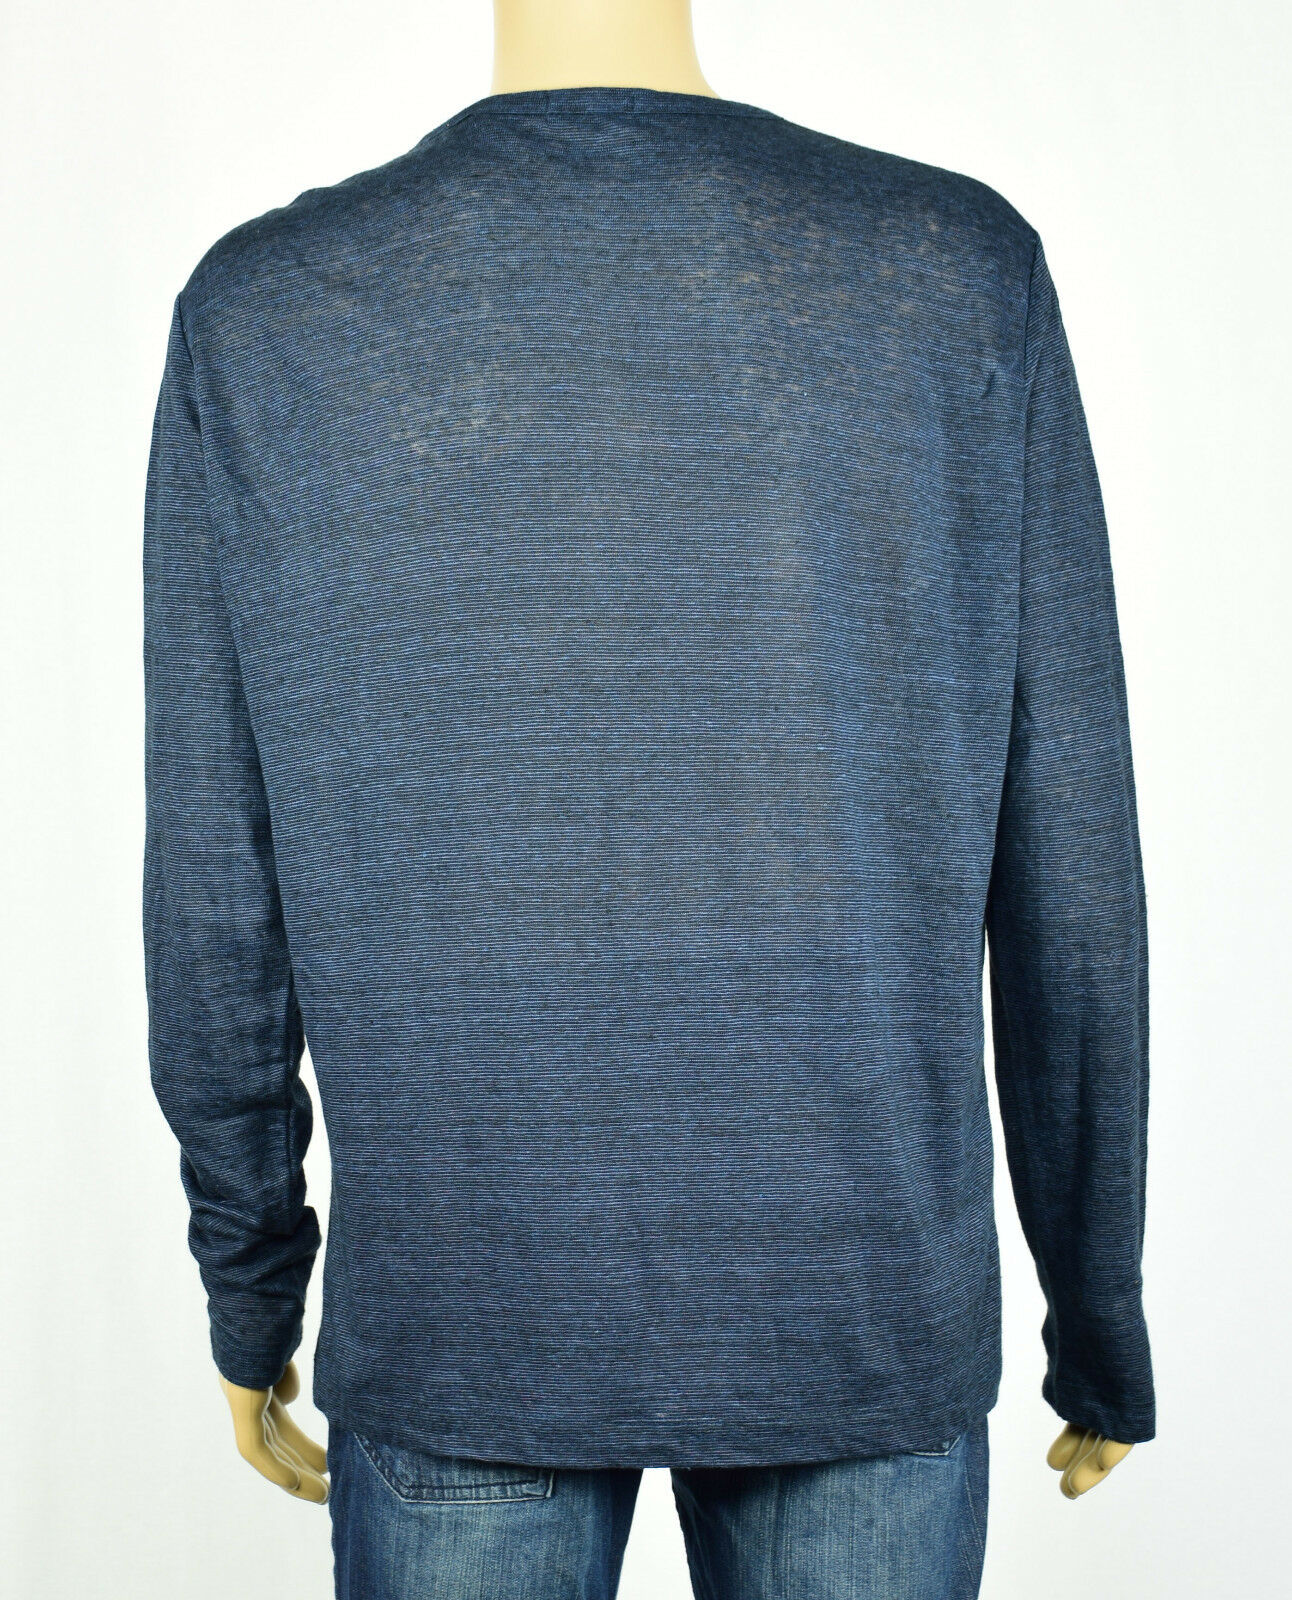 Theory Theory Theory Bleu pour Hommes/Noir Arlee L Femmeches Longues Henley Chemise XL 4107dd